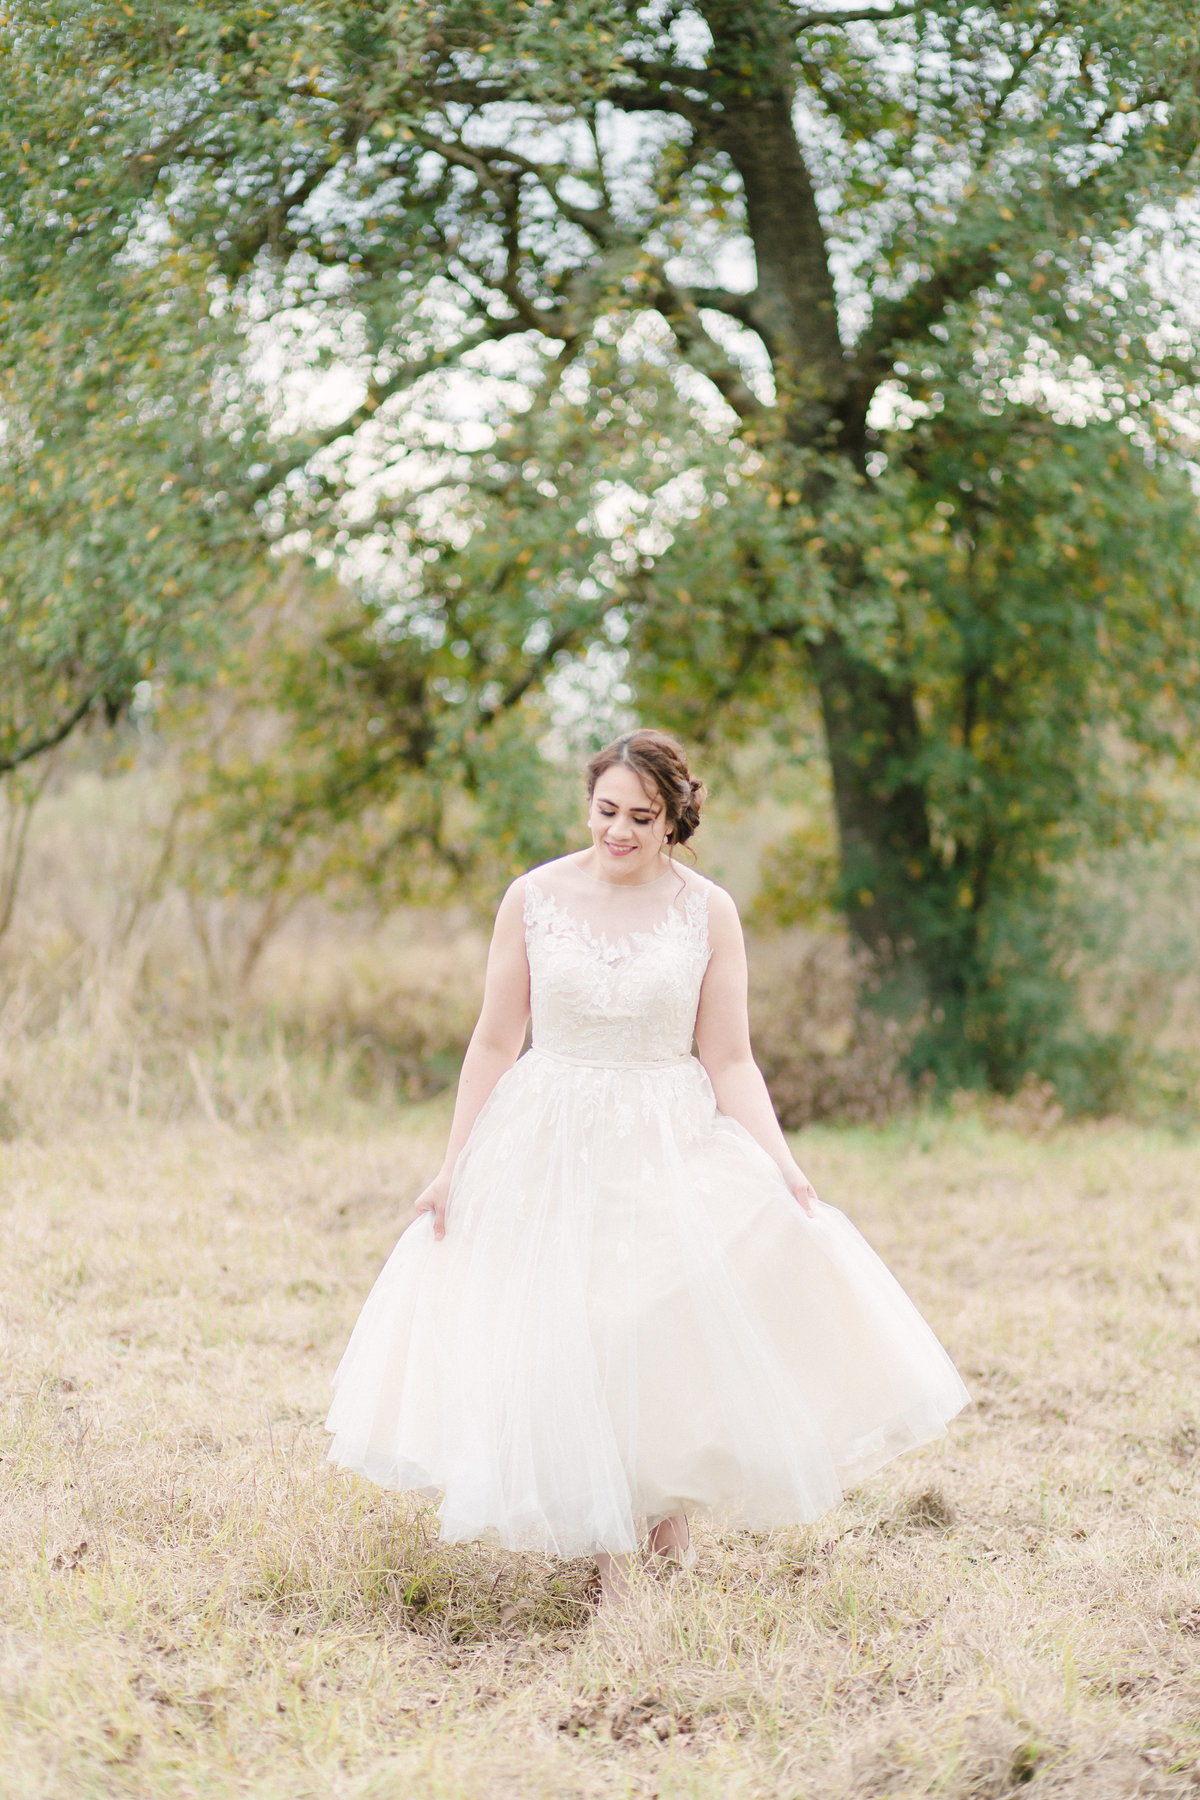 The-woodlands-bridal-session-alicia-yarrish-photography-44